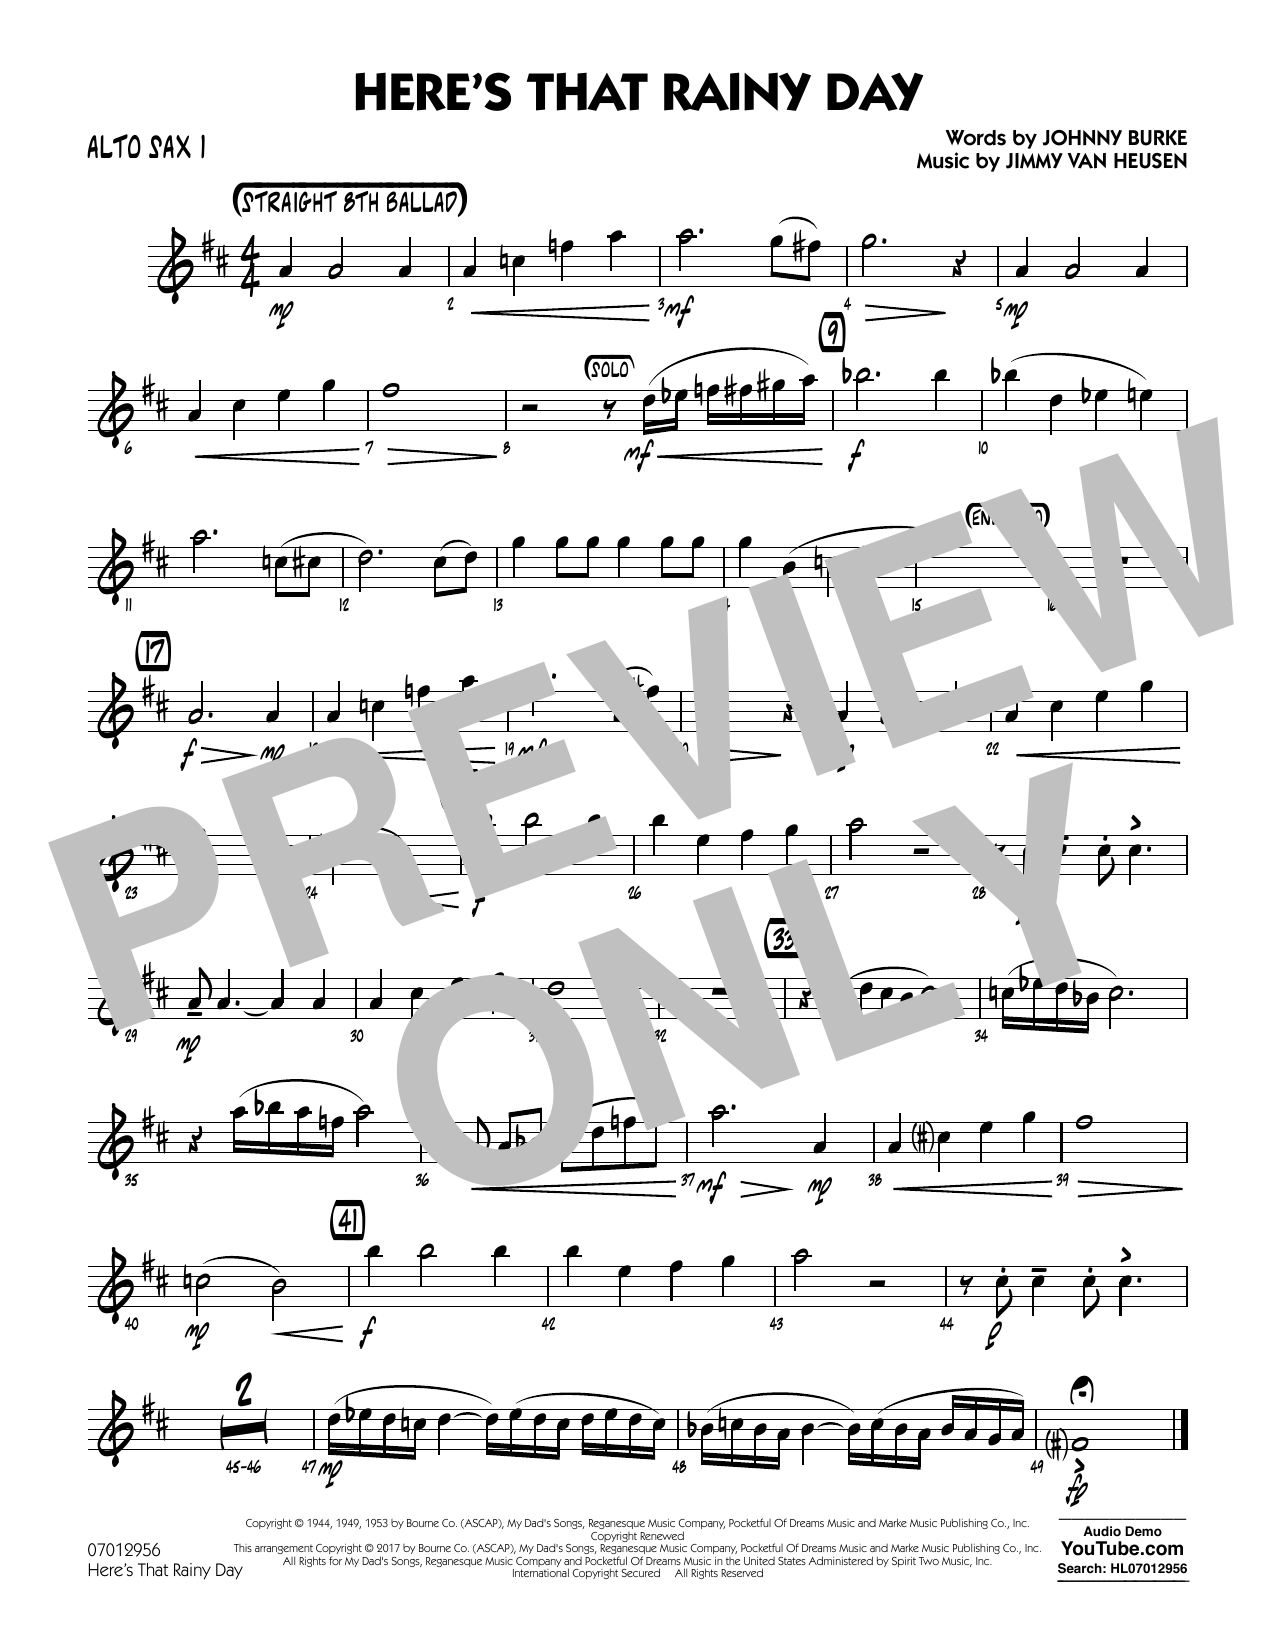 Rick Stitzel Here's That Rainy Day - Alto Sax 1 sheet music notes and chords. Download Printable PDF.